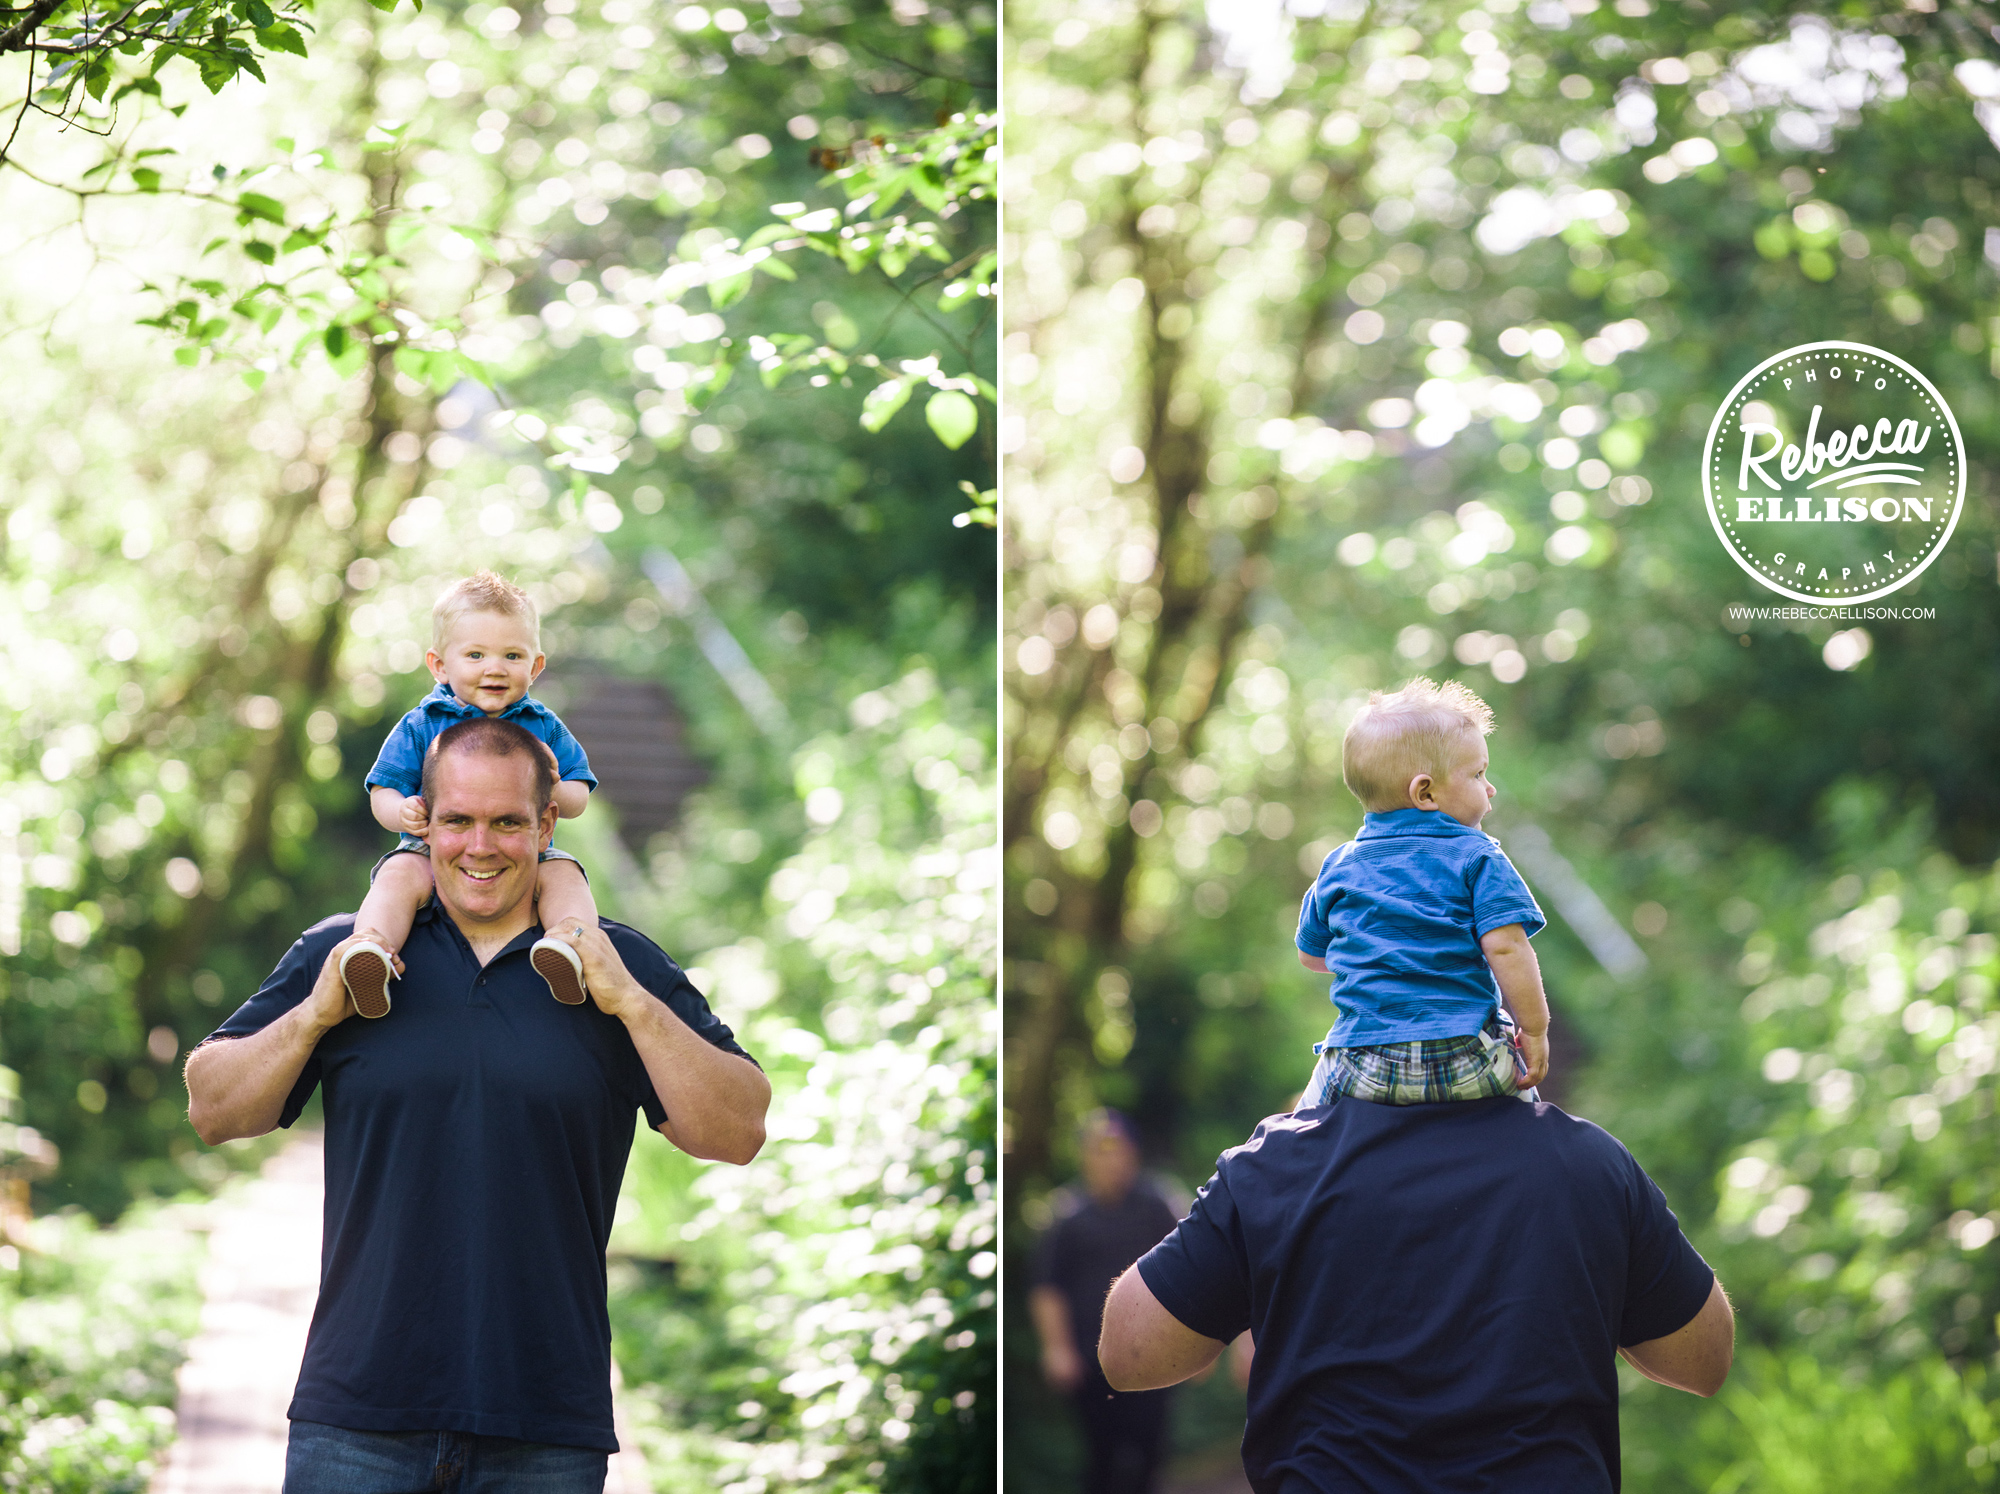 Son rides on his father's shoulders at Howarth Park photographed by Rebecca Ellison Photography